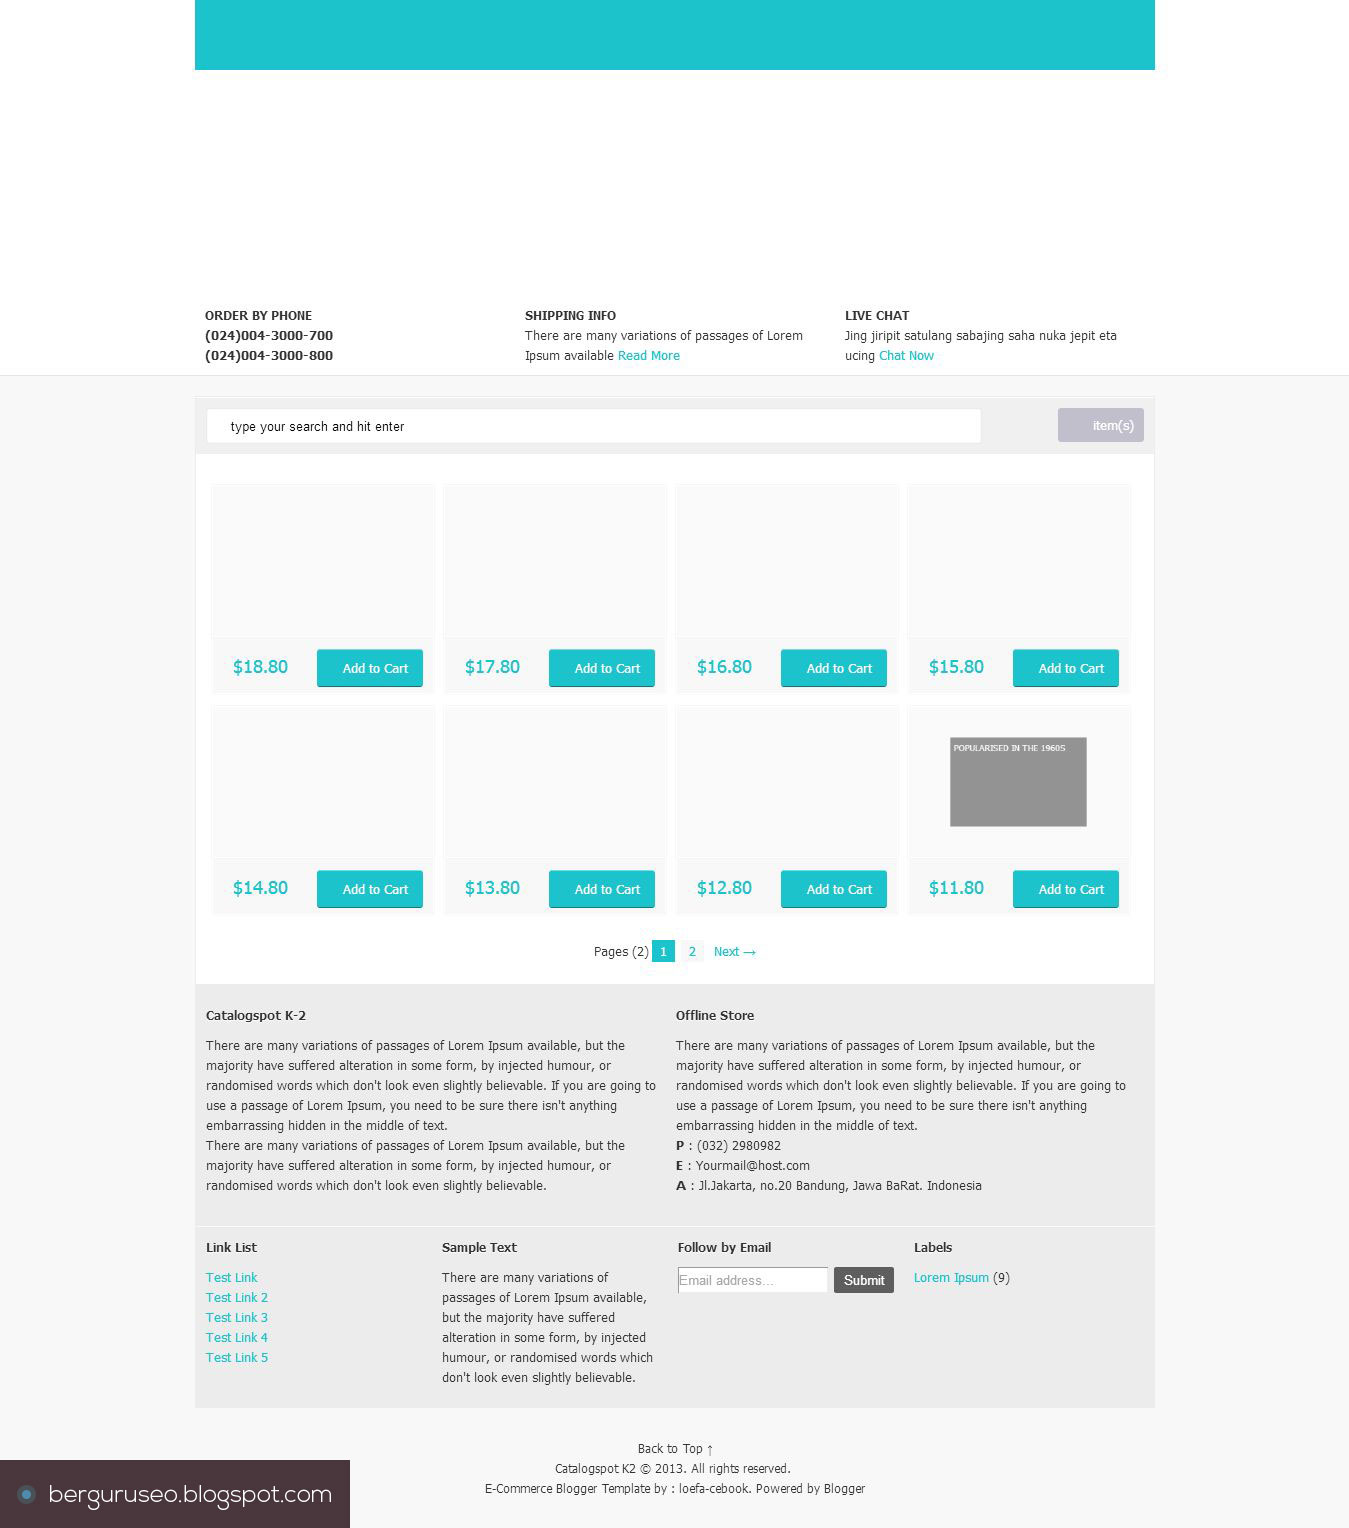 Template Blog Toko Online Catalogspot K2 E-Commerce